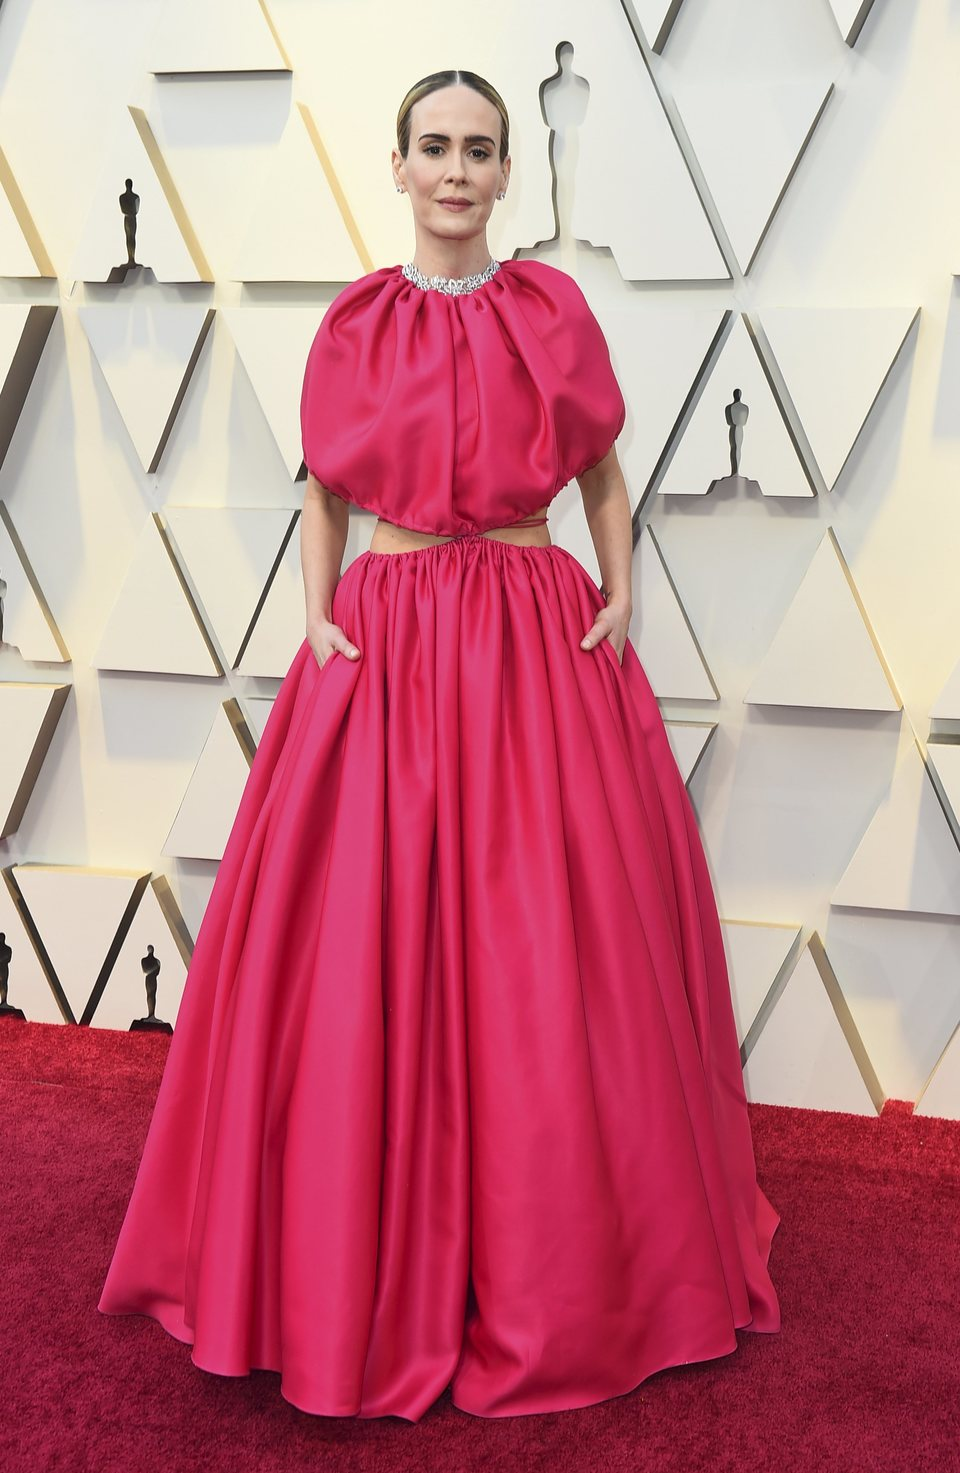 Sarah Paulson on the red carpet at the Oscars 2019